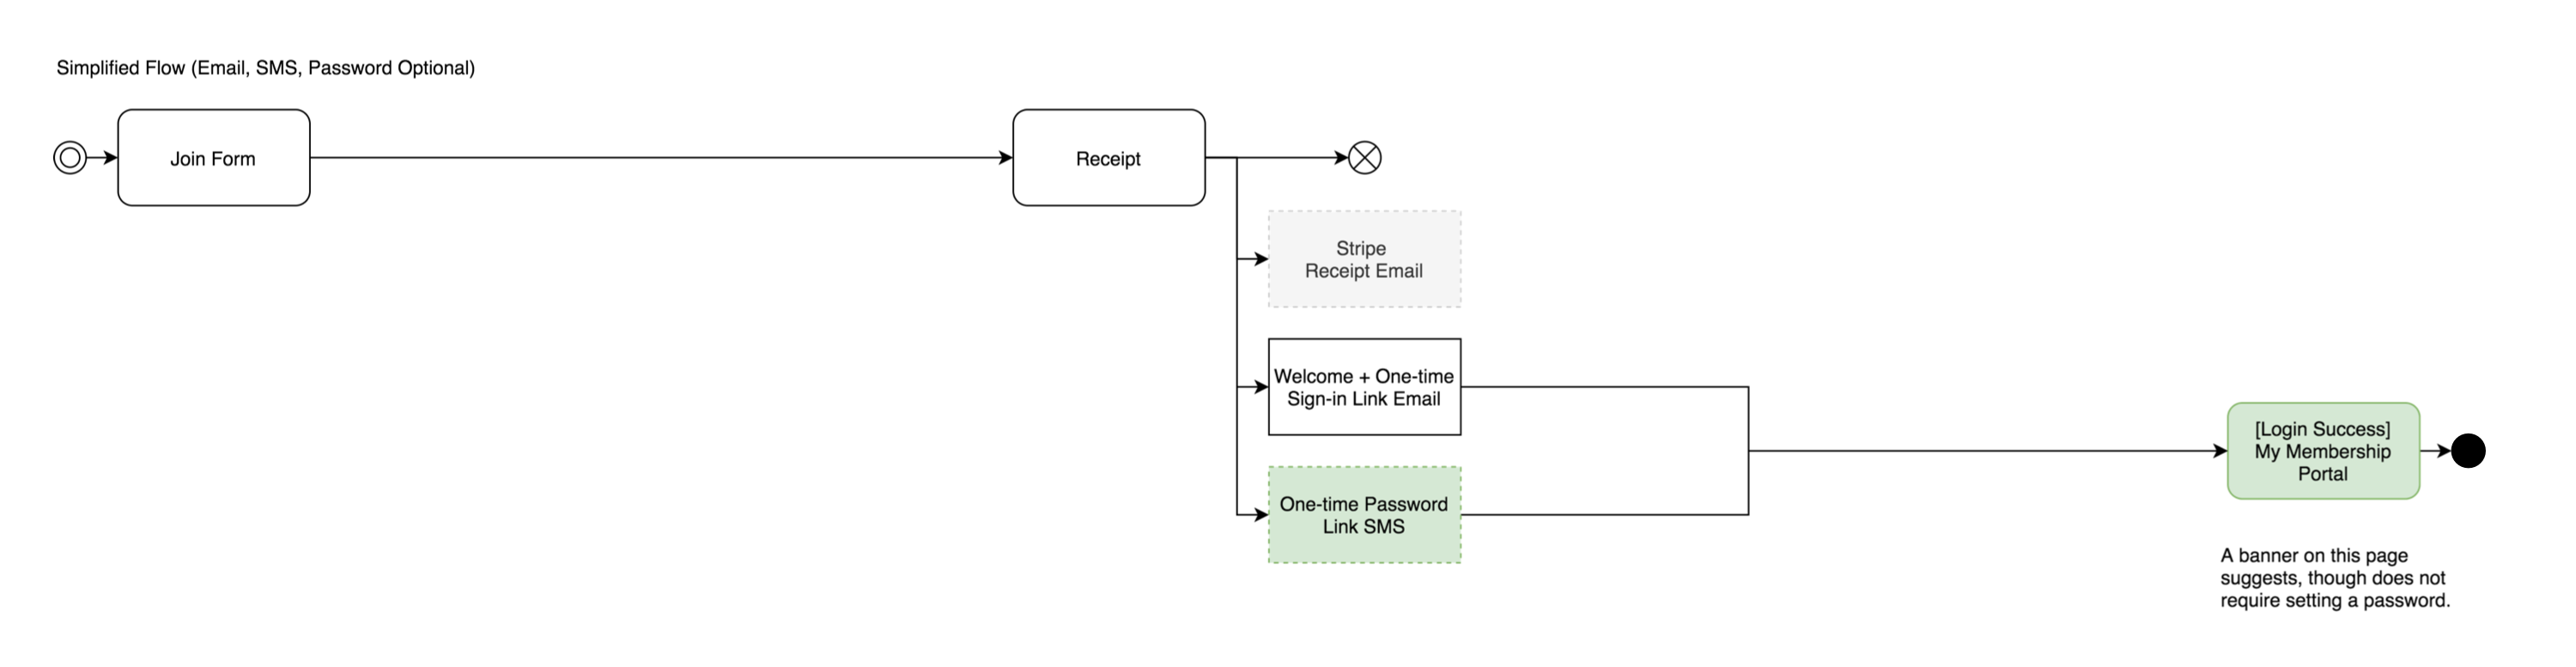 Simplified Member Sign-in User Flow